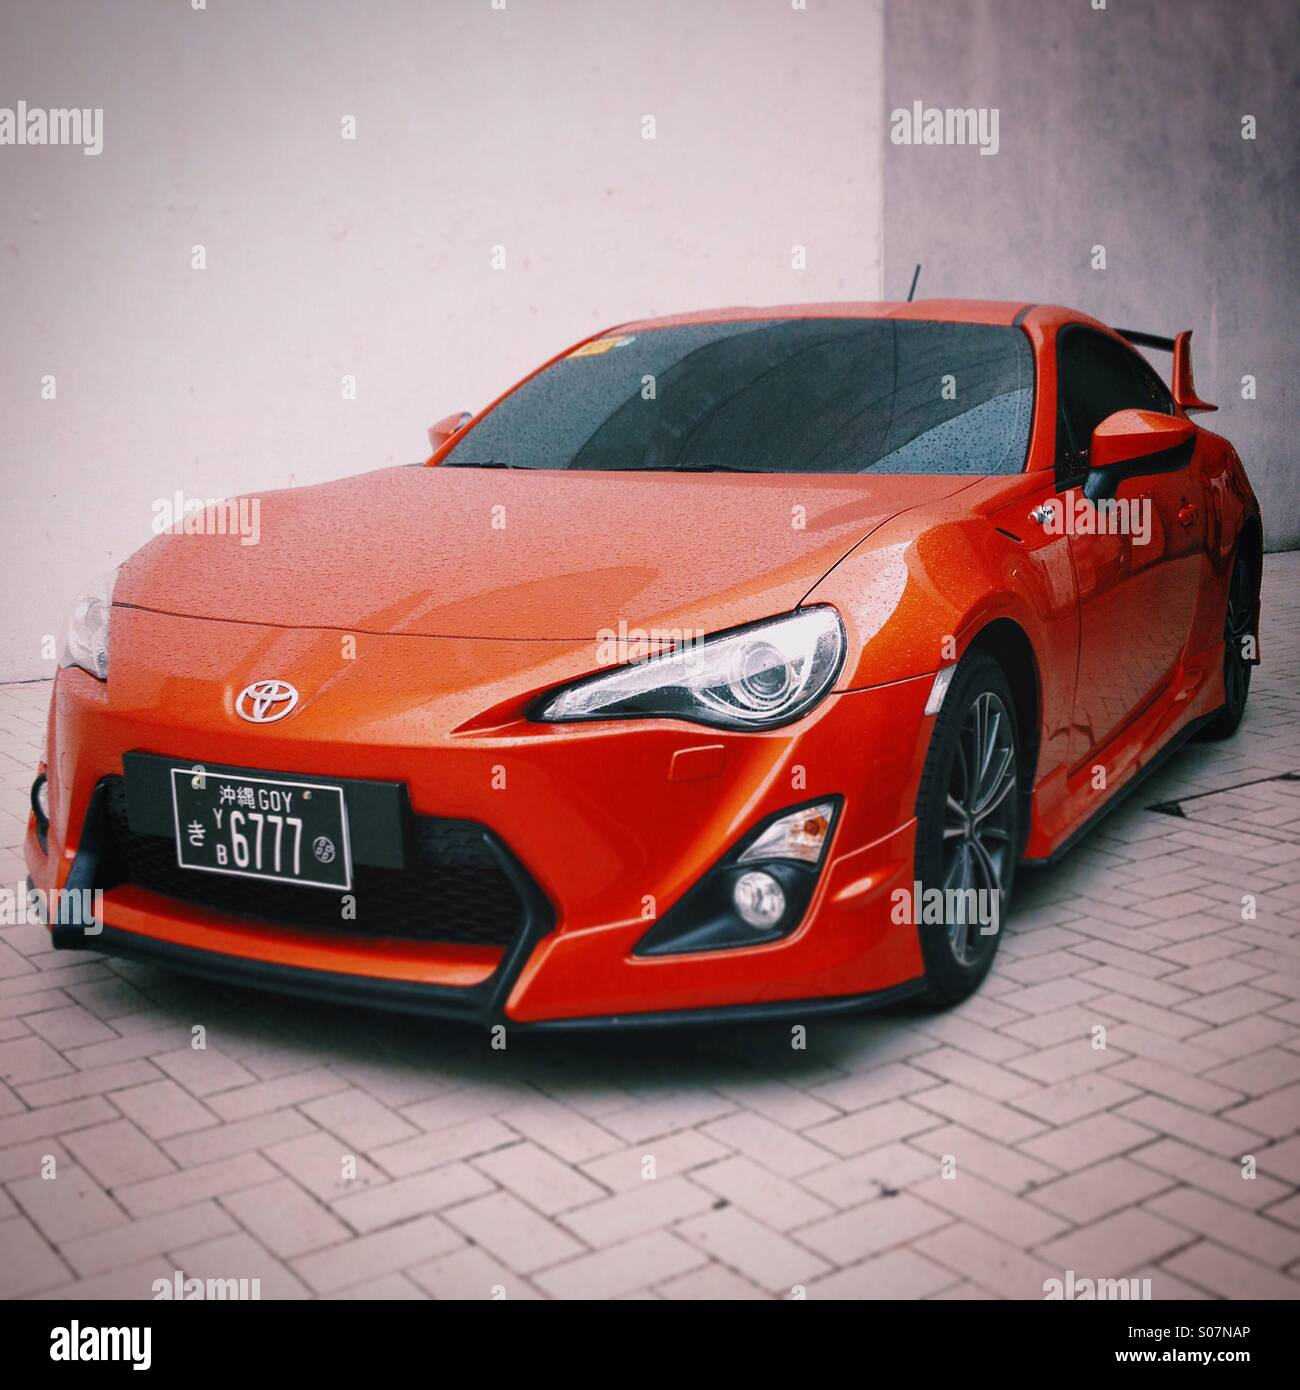 Bright Red Toyota Sports Car Parked On A Sidewalk In Central Manila,  Philippines